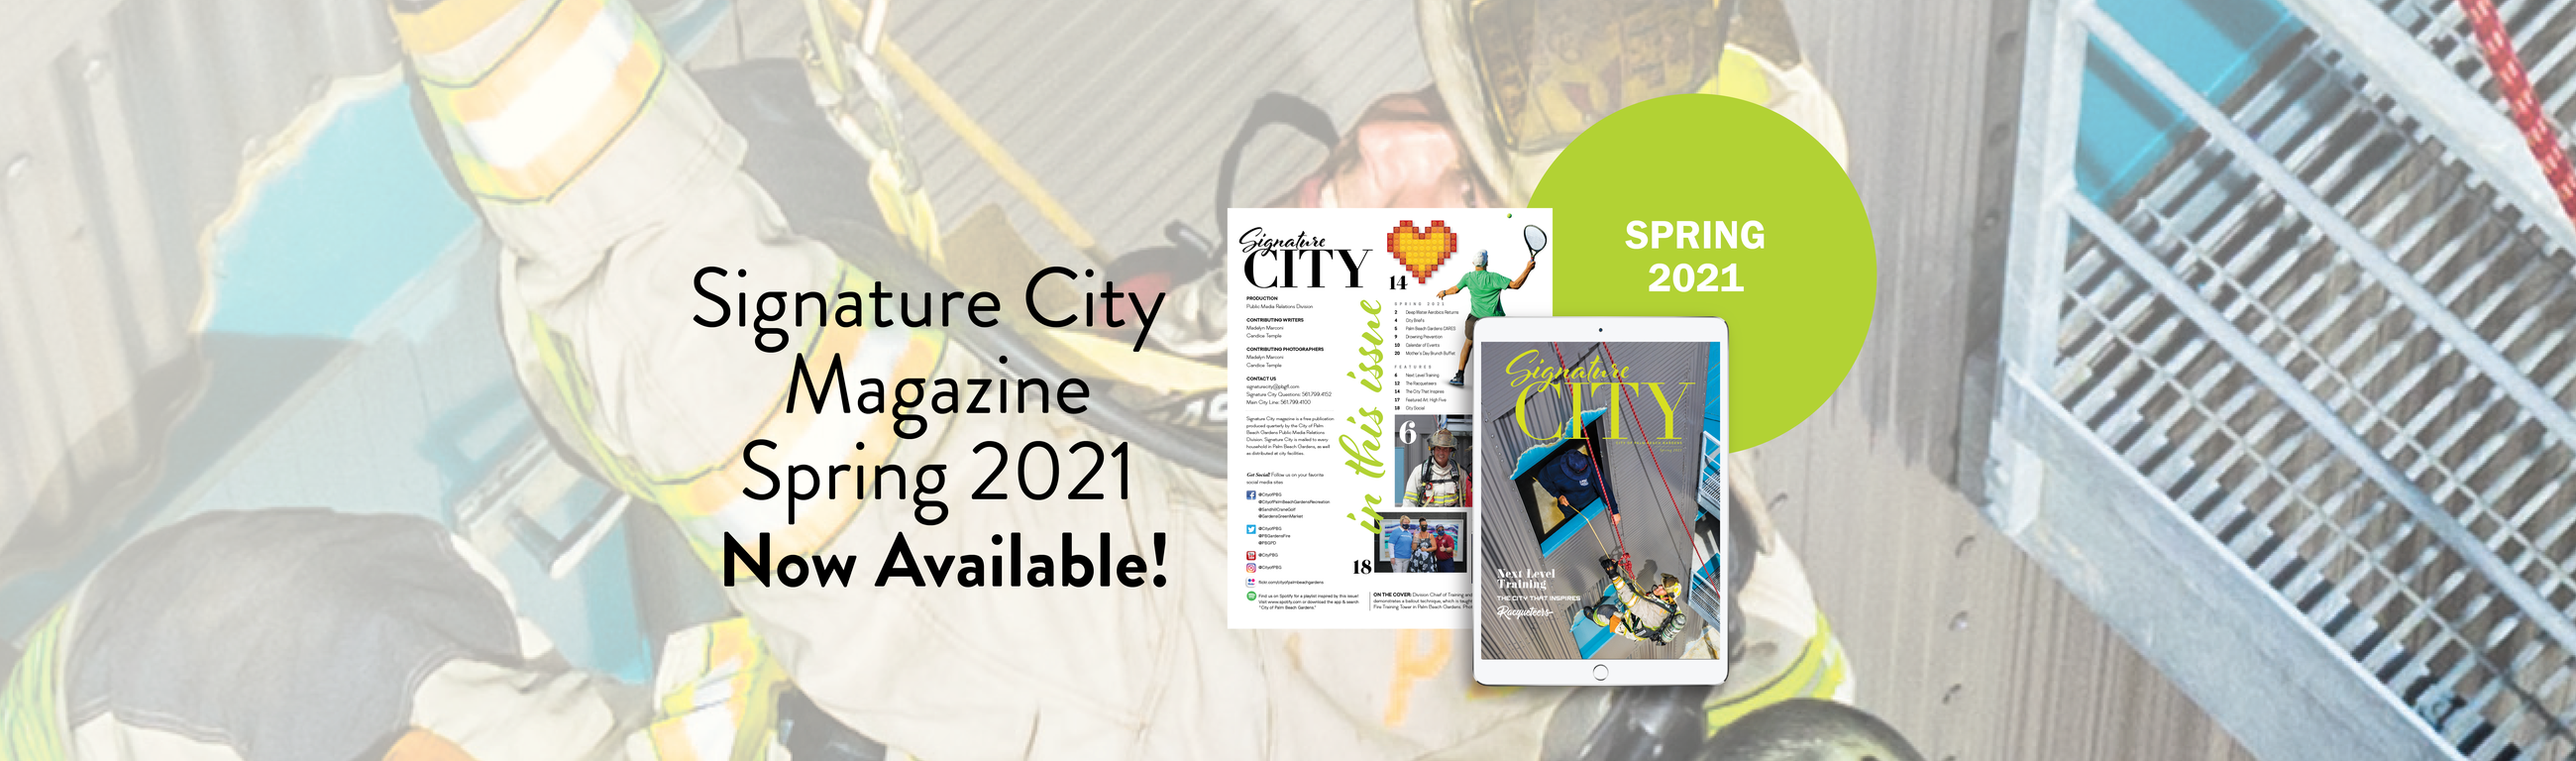 Signature City Spring 2021 issue.